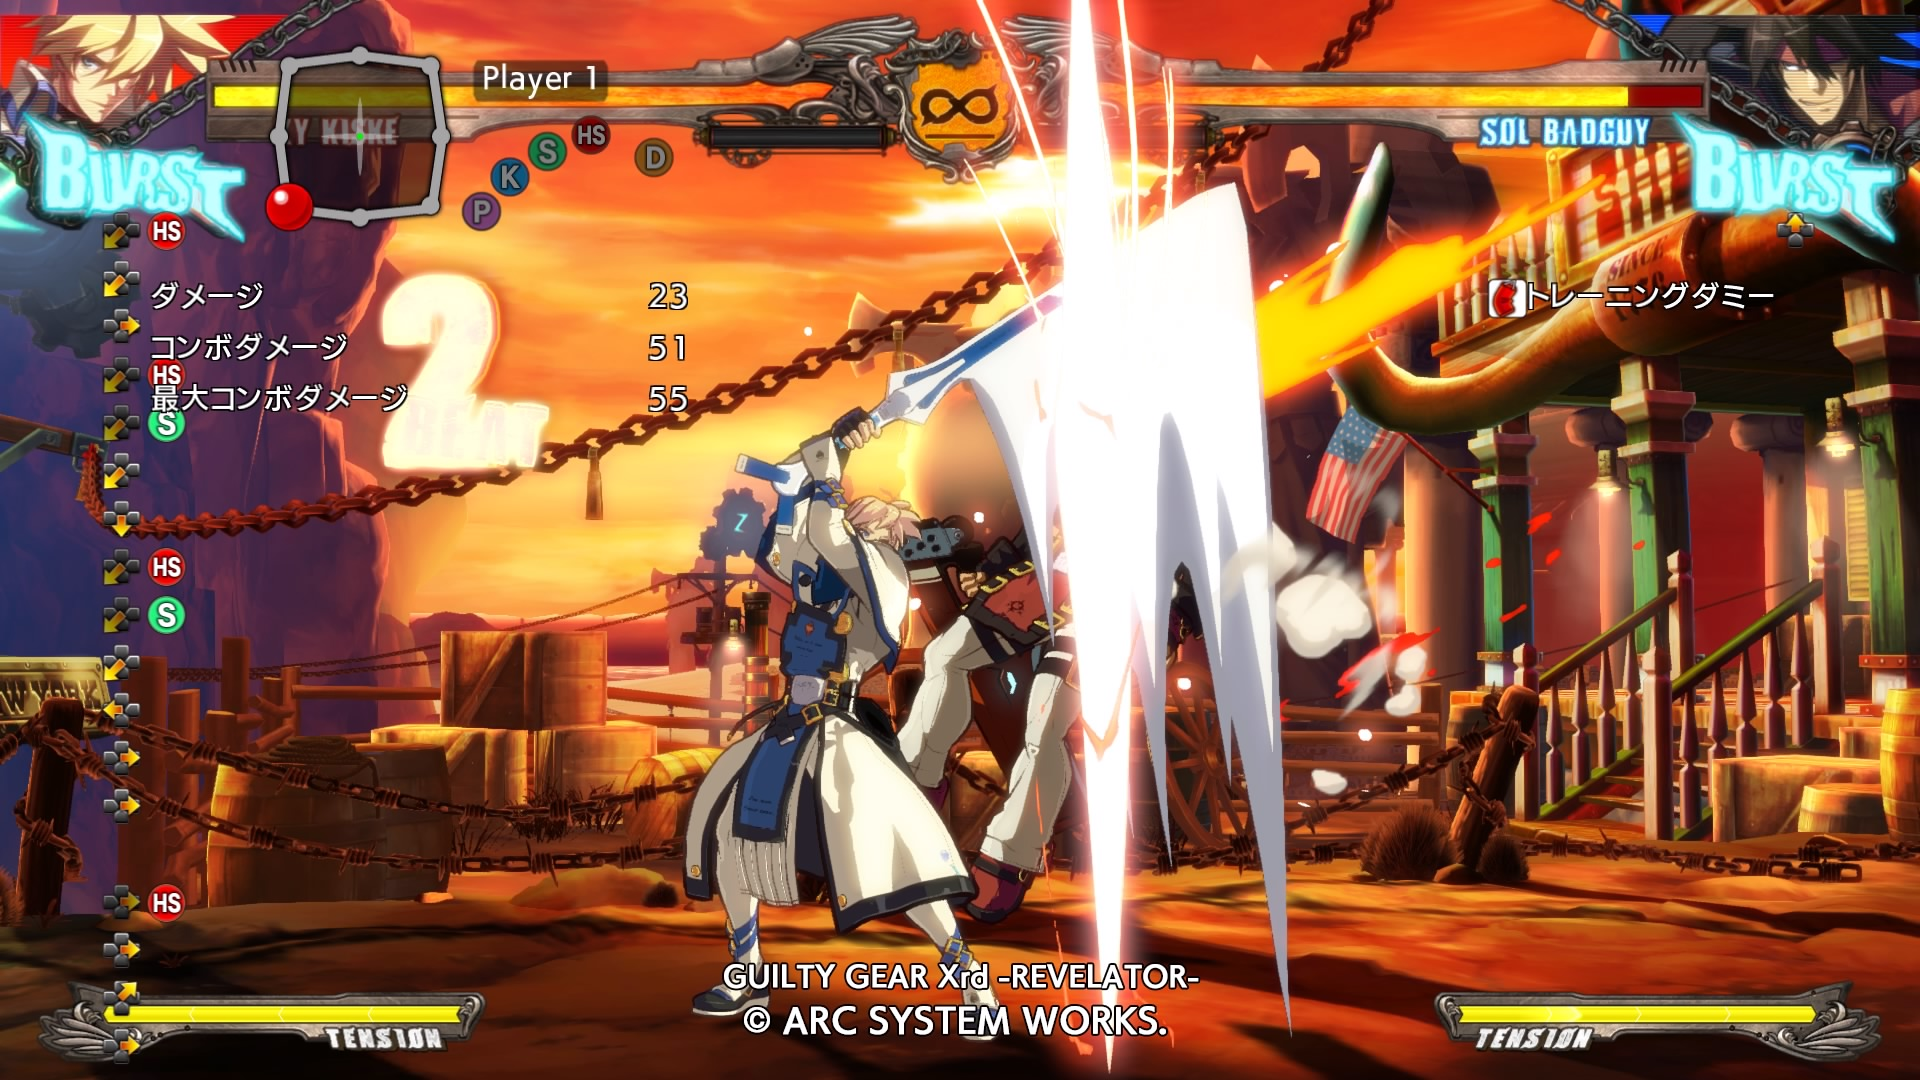 GUILTY GEAR Xrd -REVELATOR-_20161012233849